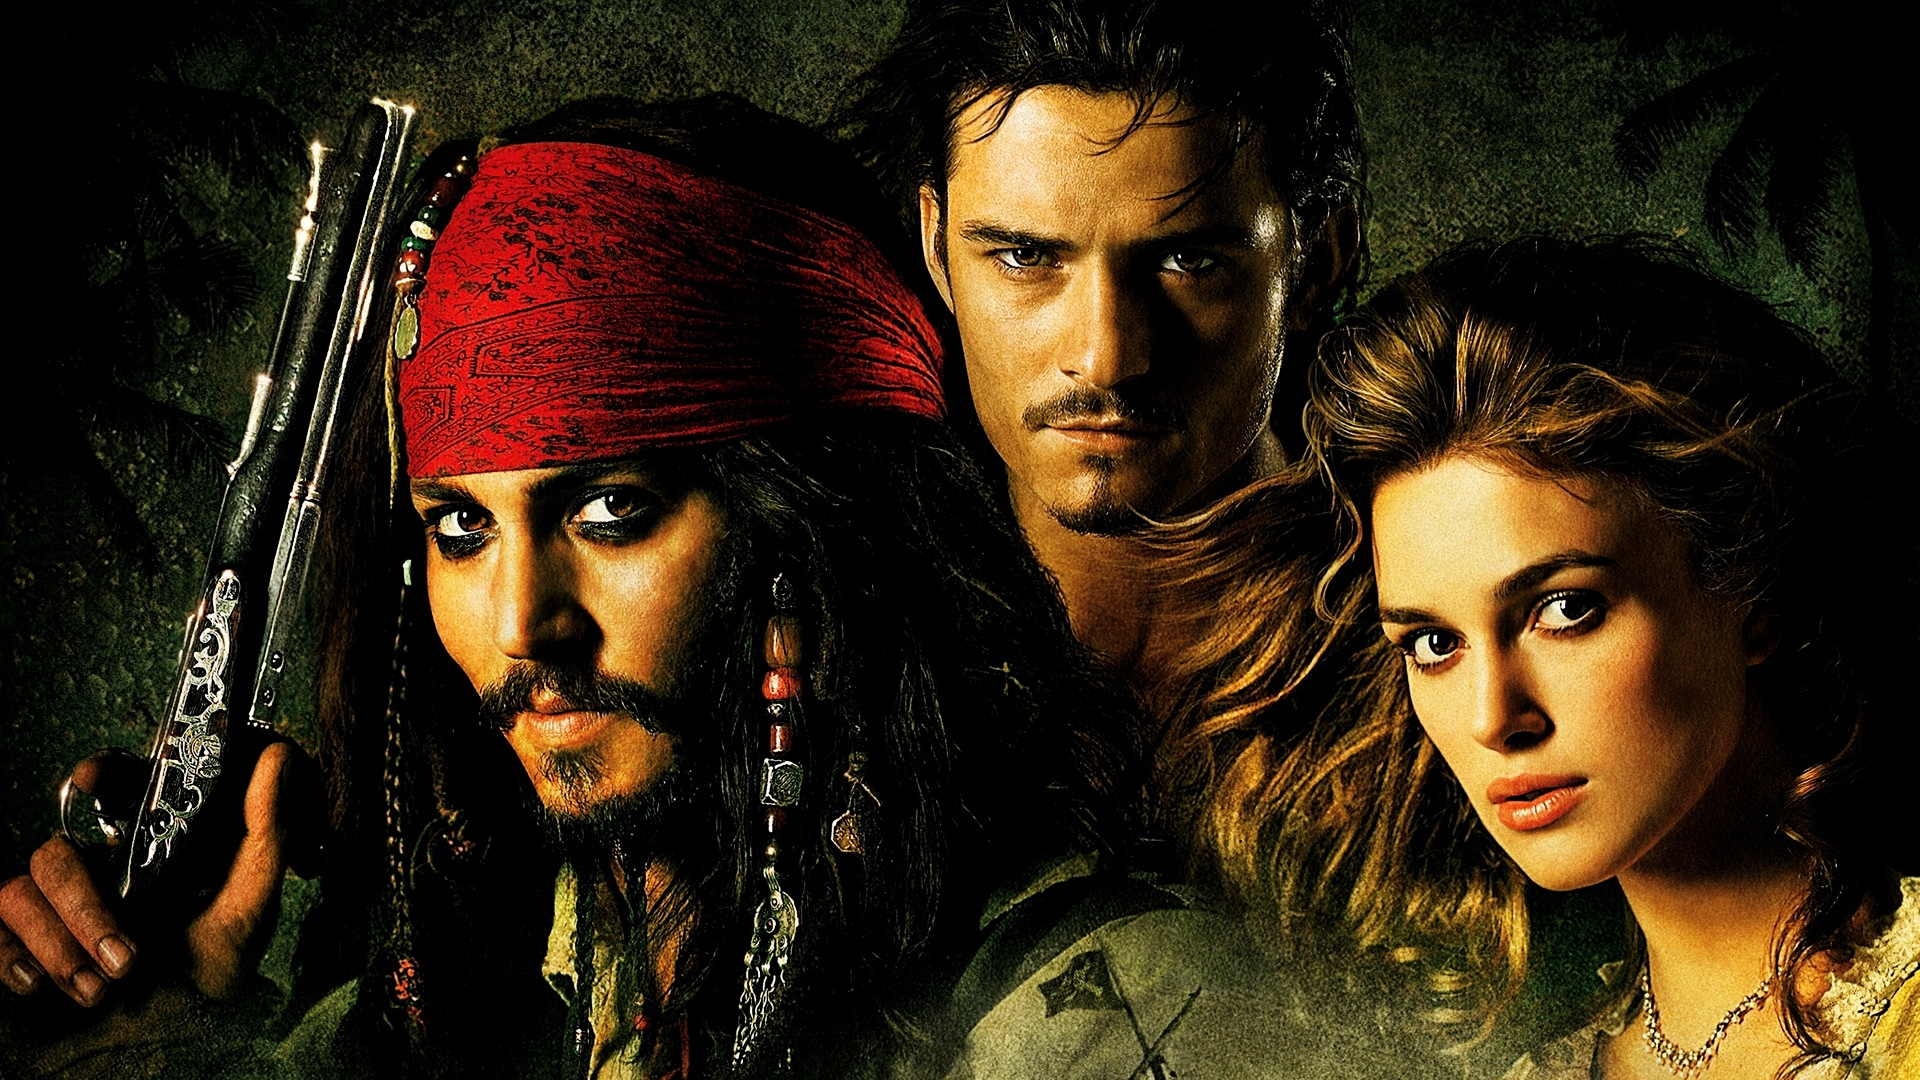 of the Caribbean Wallpaper Movies HD Widescreen Wallpapers 1920 1080 1920x1080